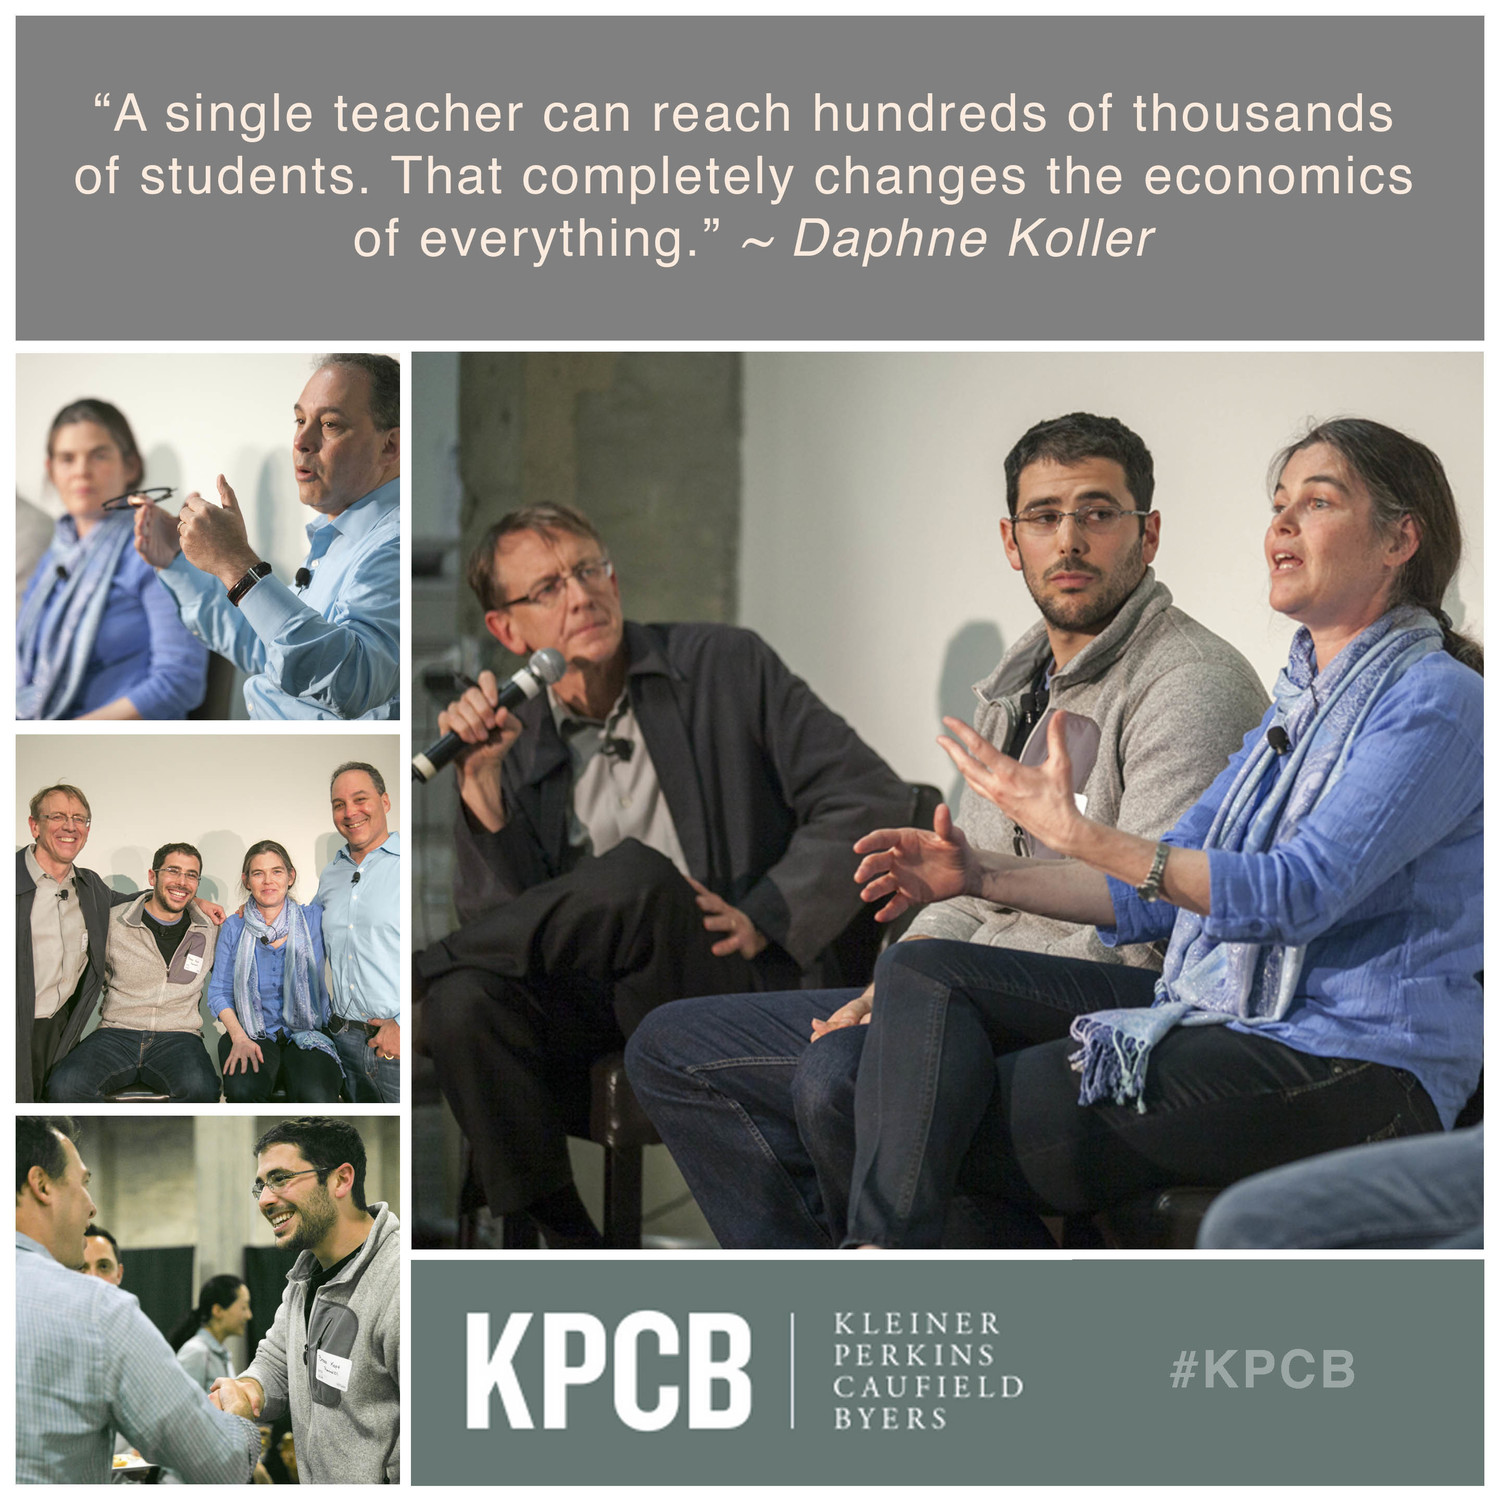 KPCB Education Leadership Salon